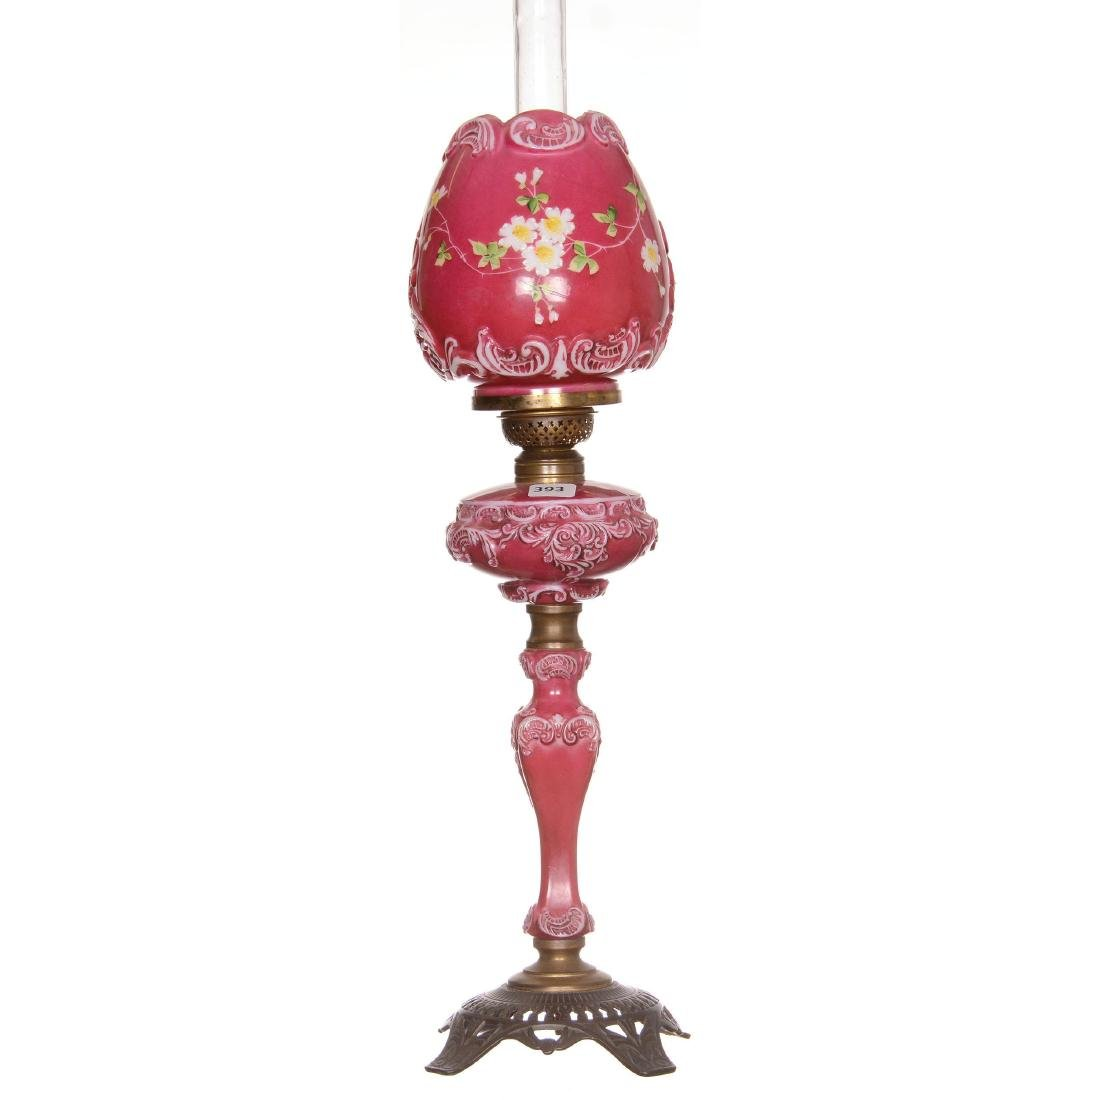 Miniature Banquet Lamp